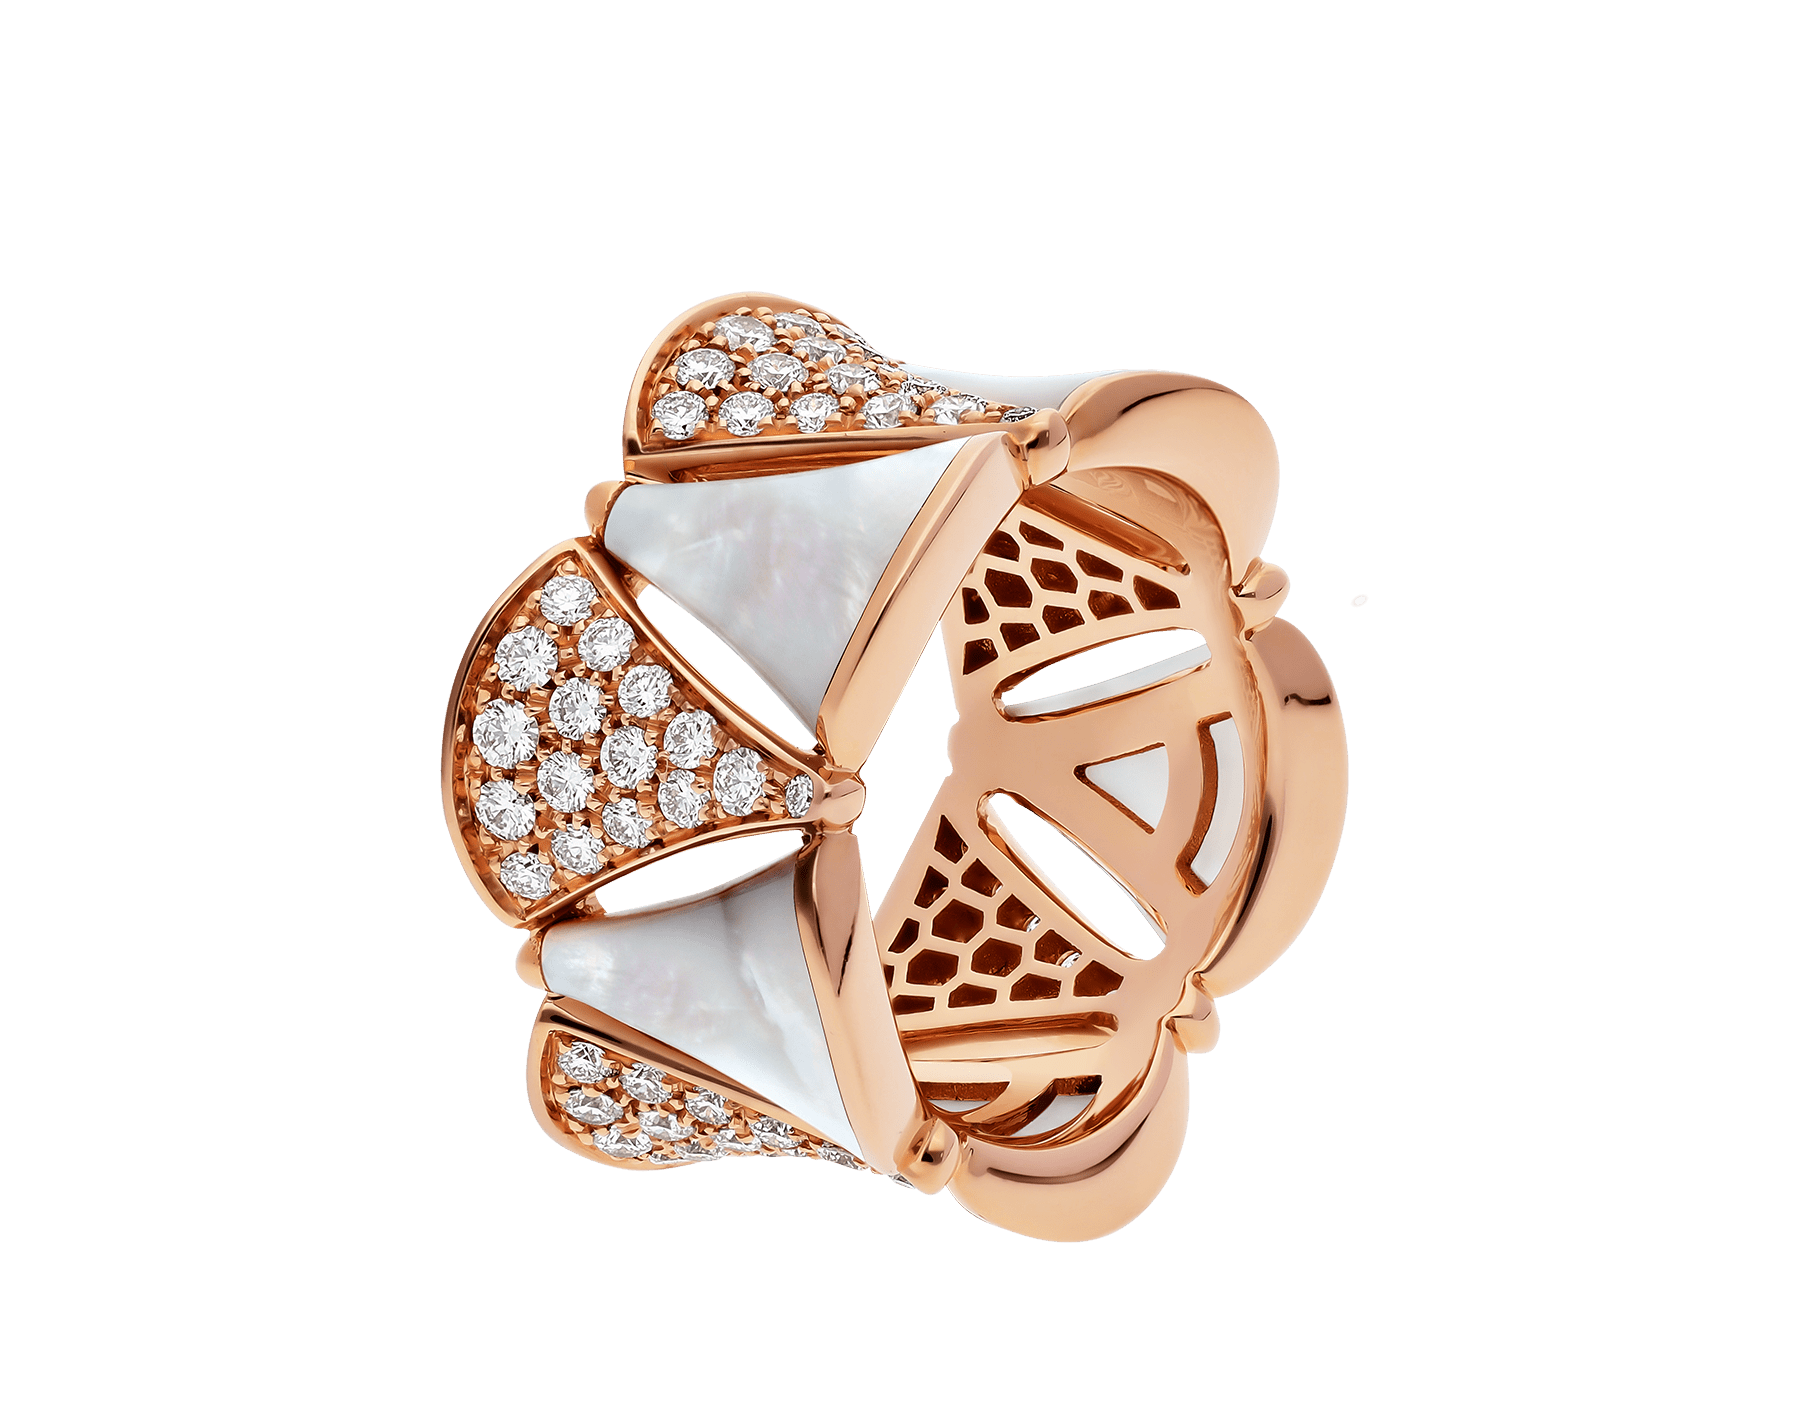 DIVAS' DREAM ring in 18 kt rose gold, set with mother-of-pearl elements and pavé diamonds. AN856775 image 1